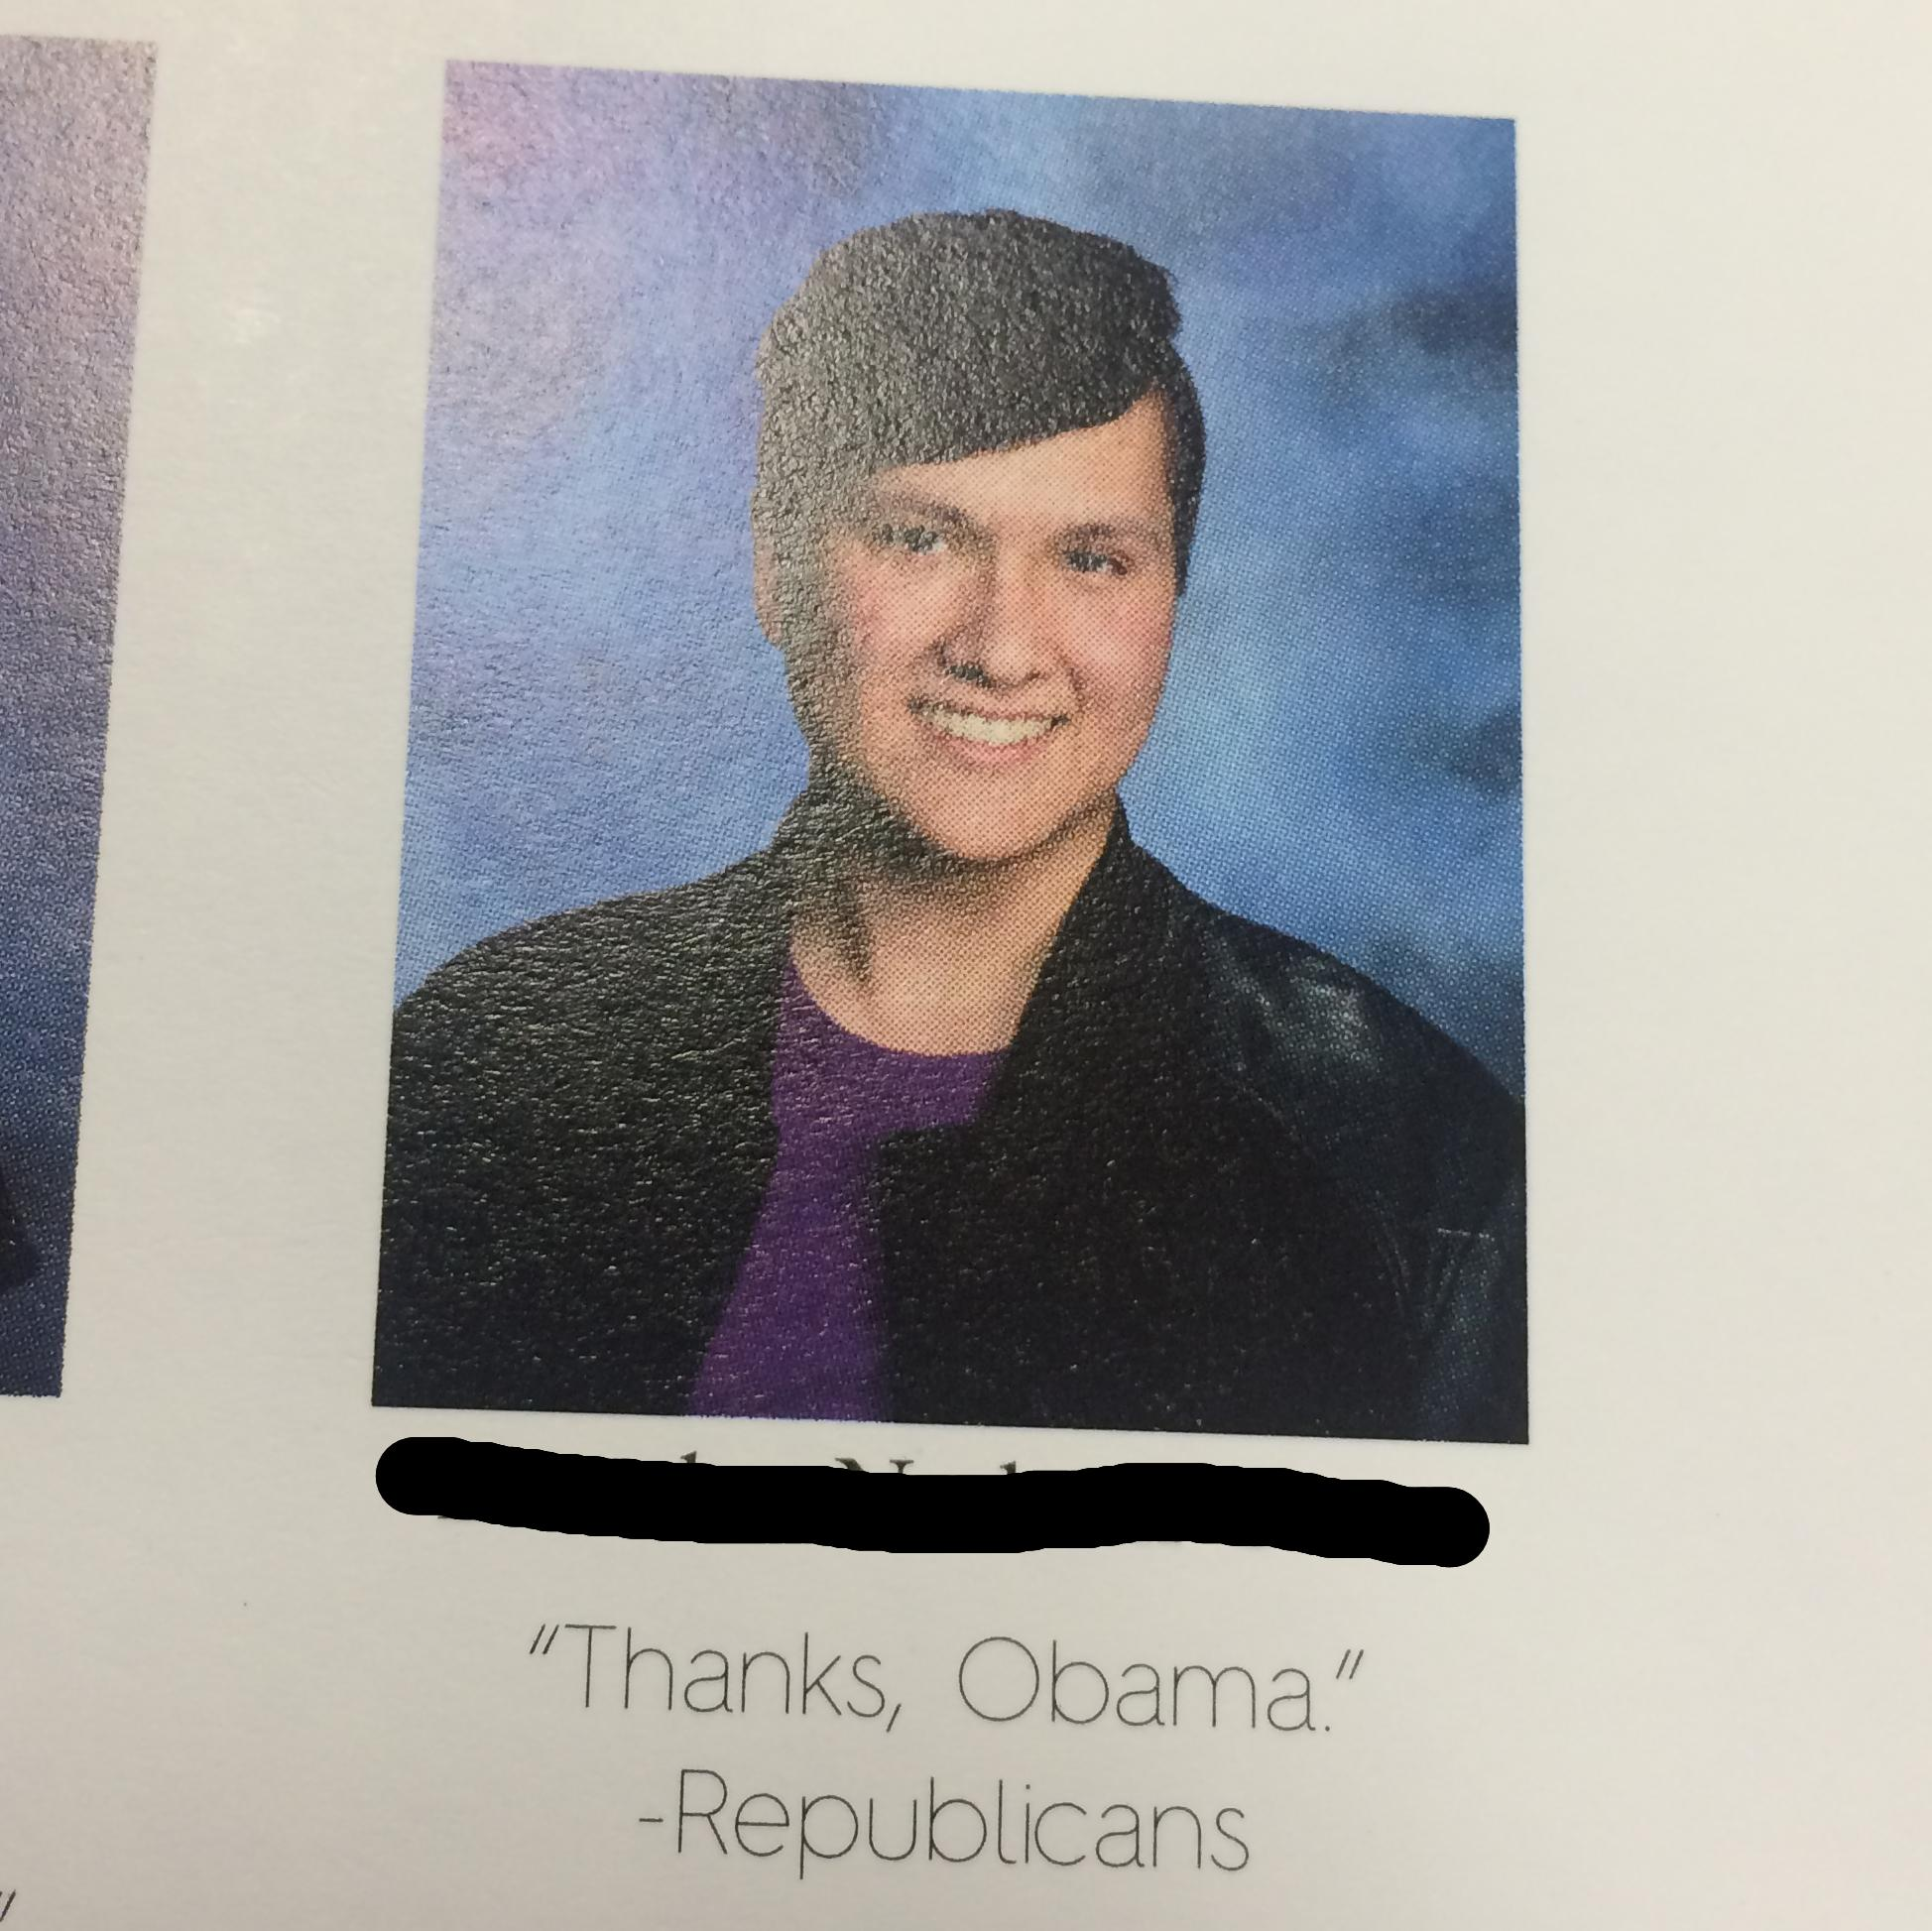 Senior Yearbook Quotes 19 Ridiculous Yearbook Quotes  Funny Gallery  Ebaum's World